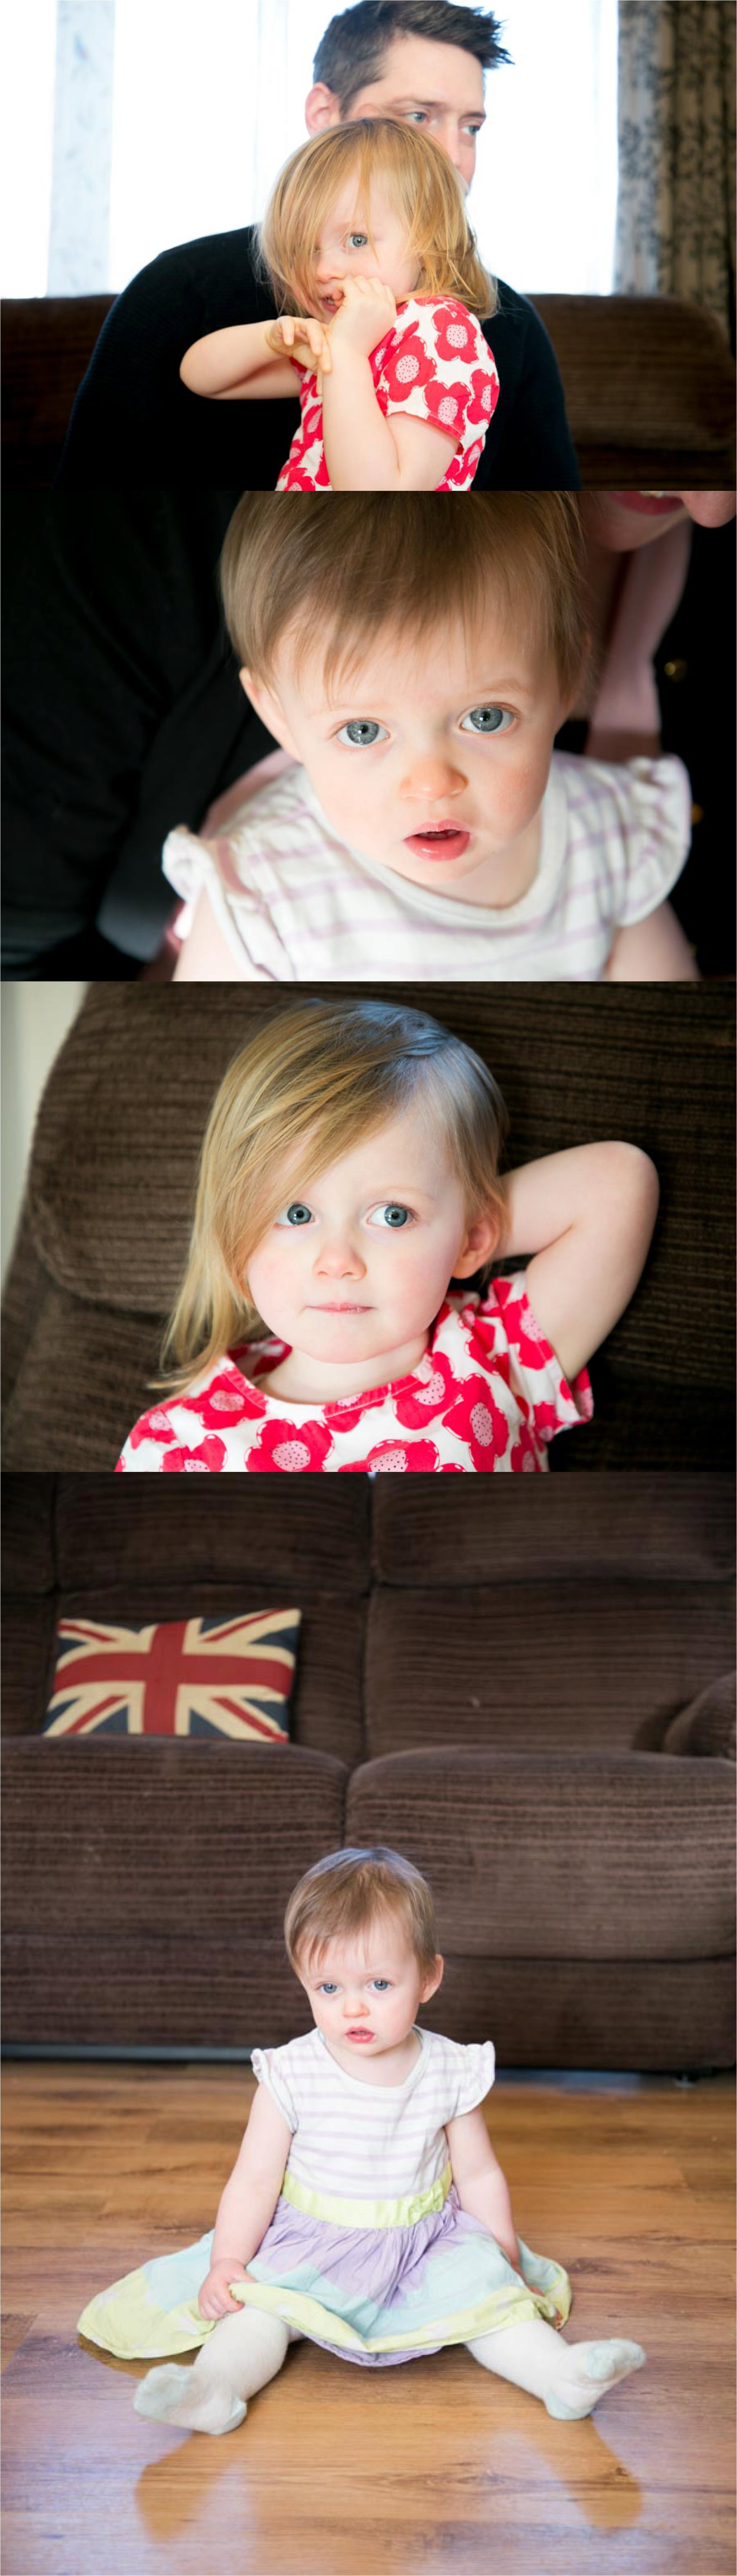 documentary family photography at home in suffolk